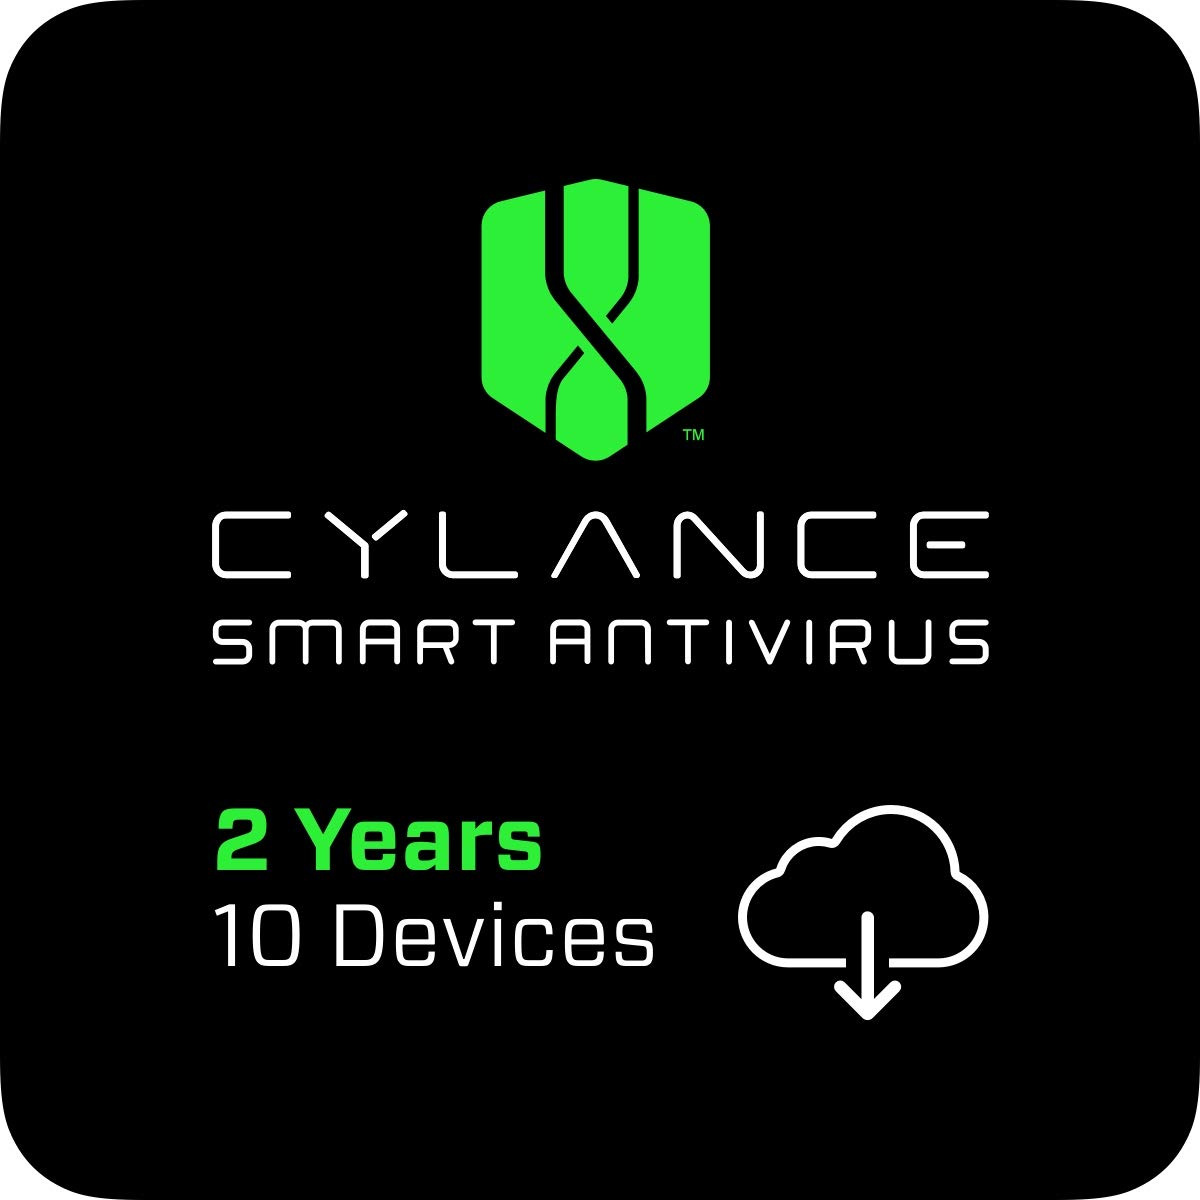 Cylance Smart Antivirus | 2 Years | 10 Devices [PC/Mac Online Code] by Cylance, Inc.